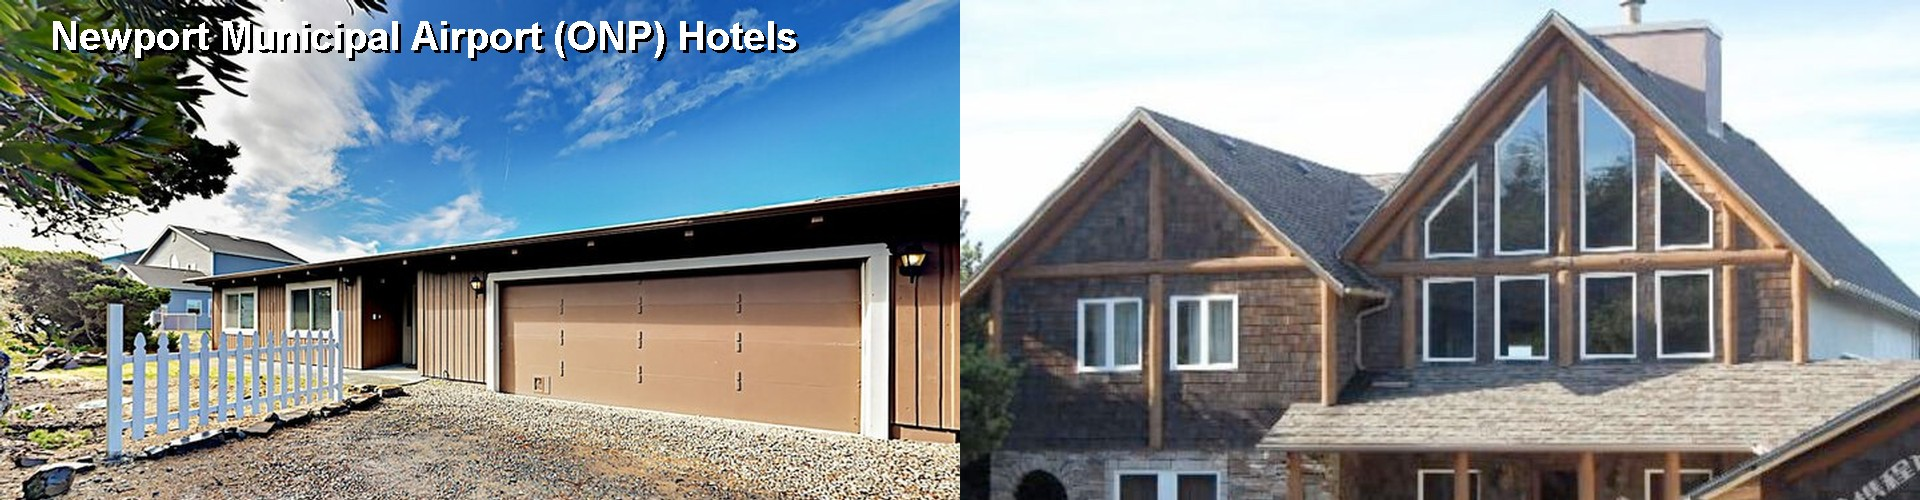 5 Best Hotels near Newport Municipal Airport (ONP)